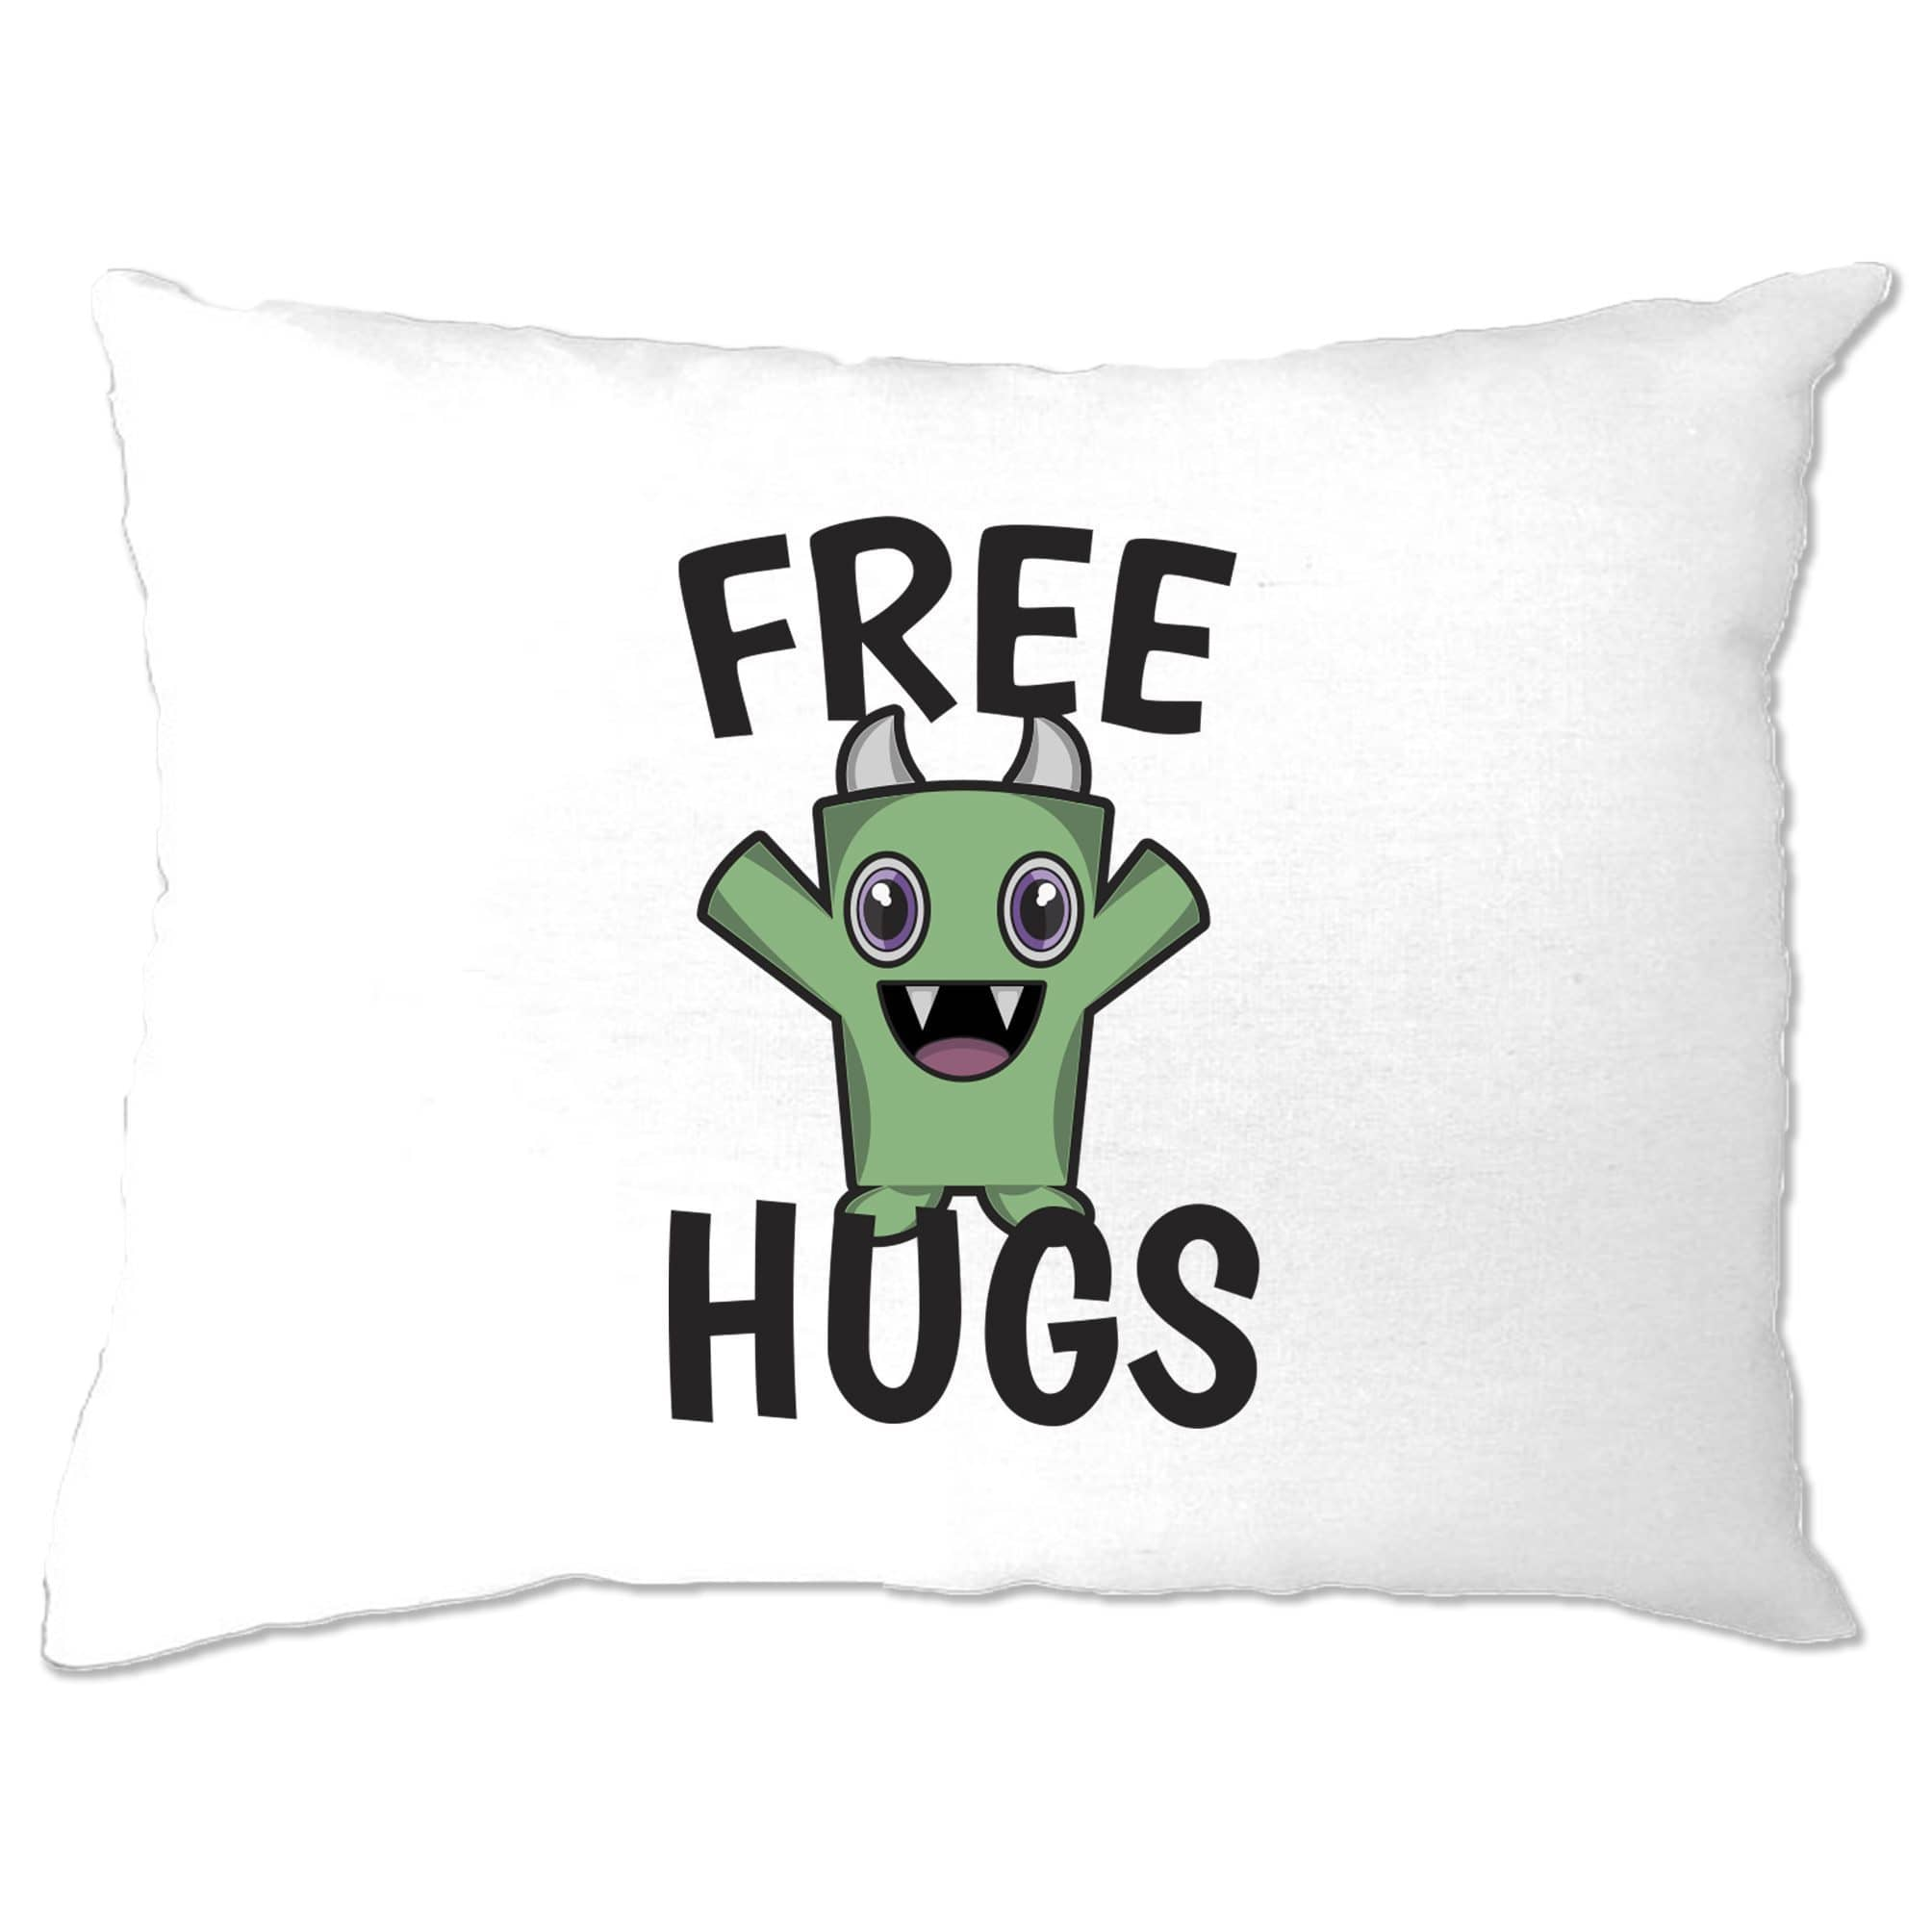 Festival Pillow Case Free Hugs Slogan With Cute Monster